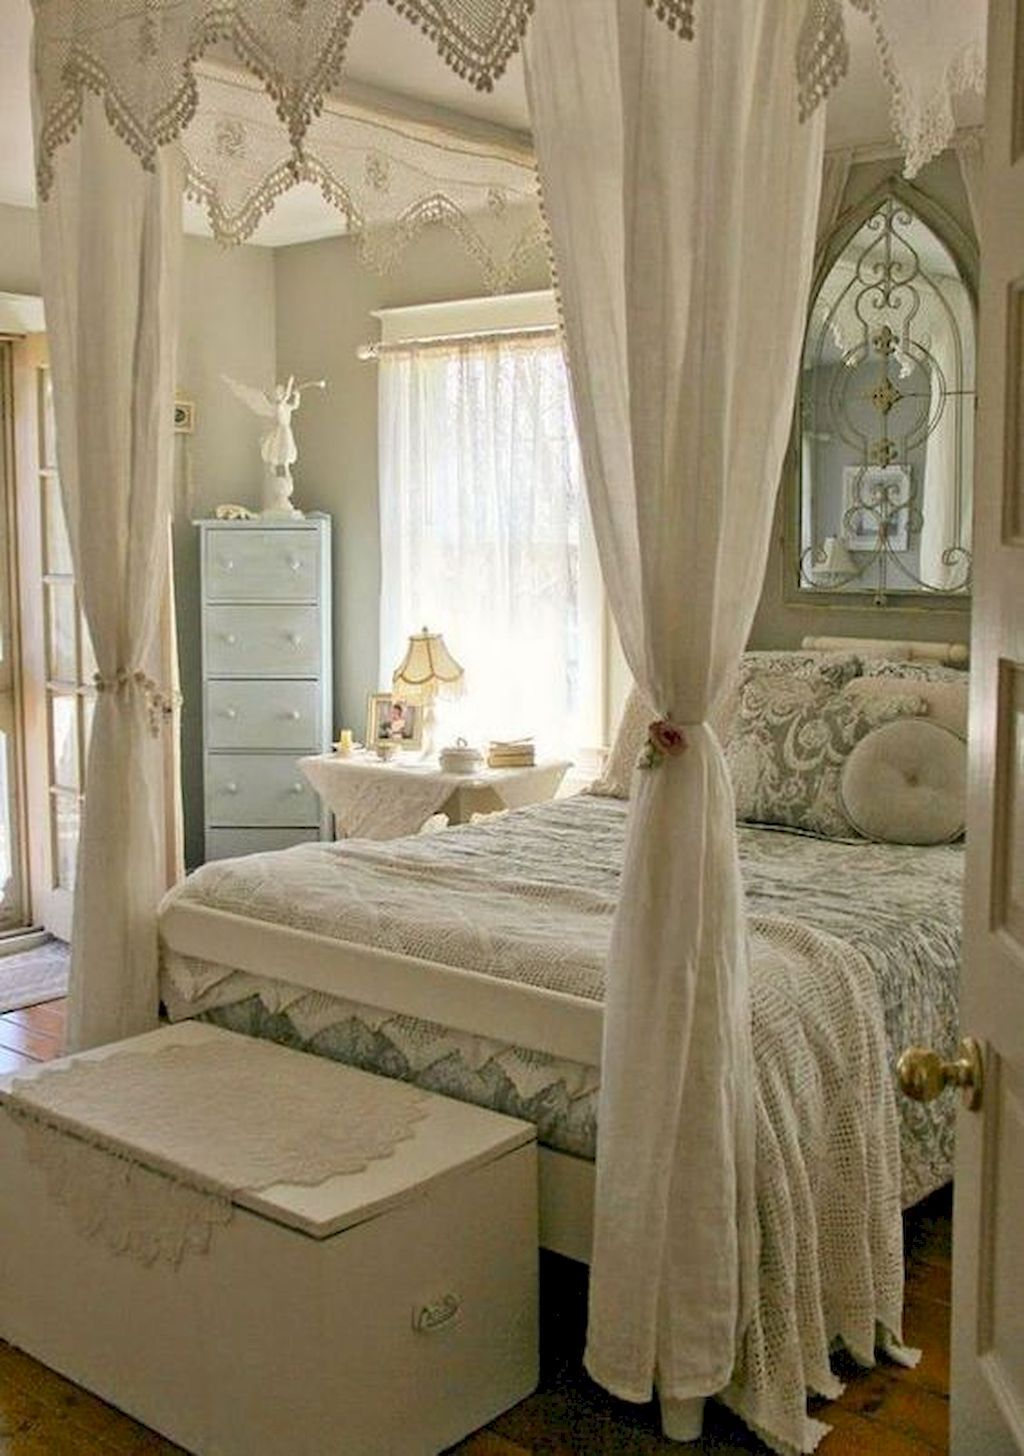 45 Stunning Shabby Chic Bedroom Decor Ideas | Shabby chic bedrooms ...